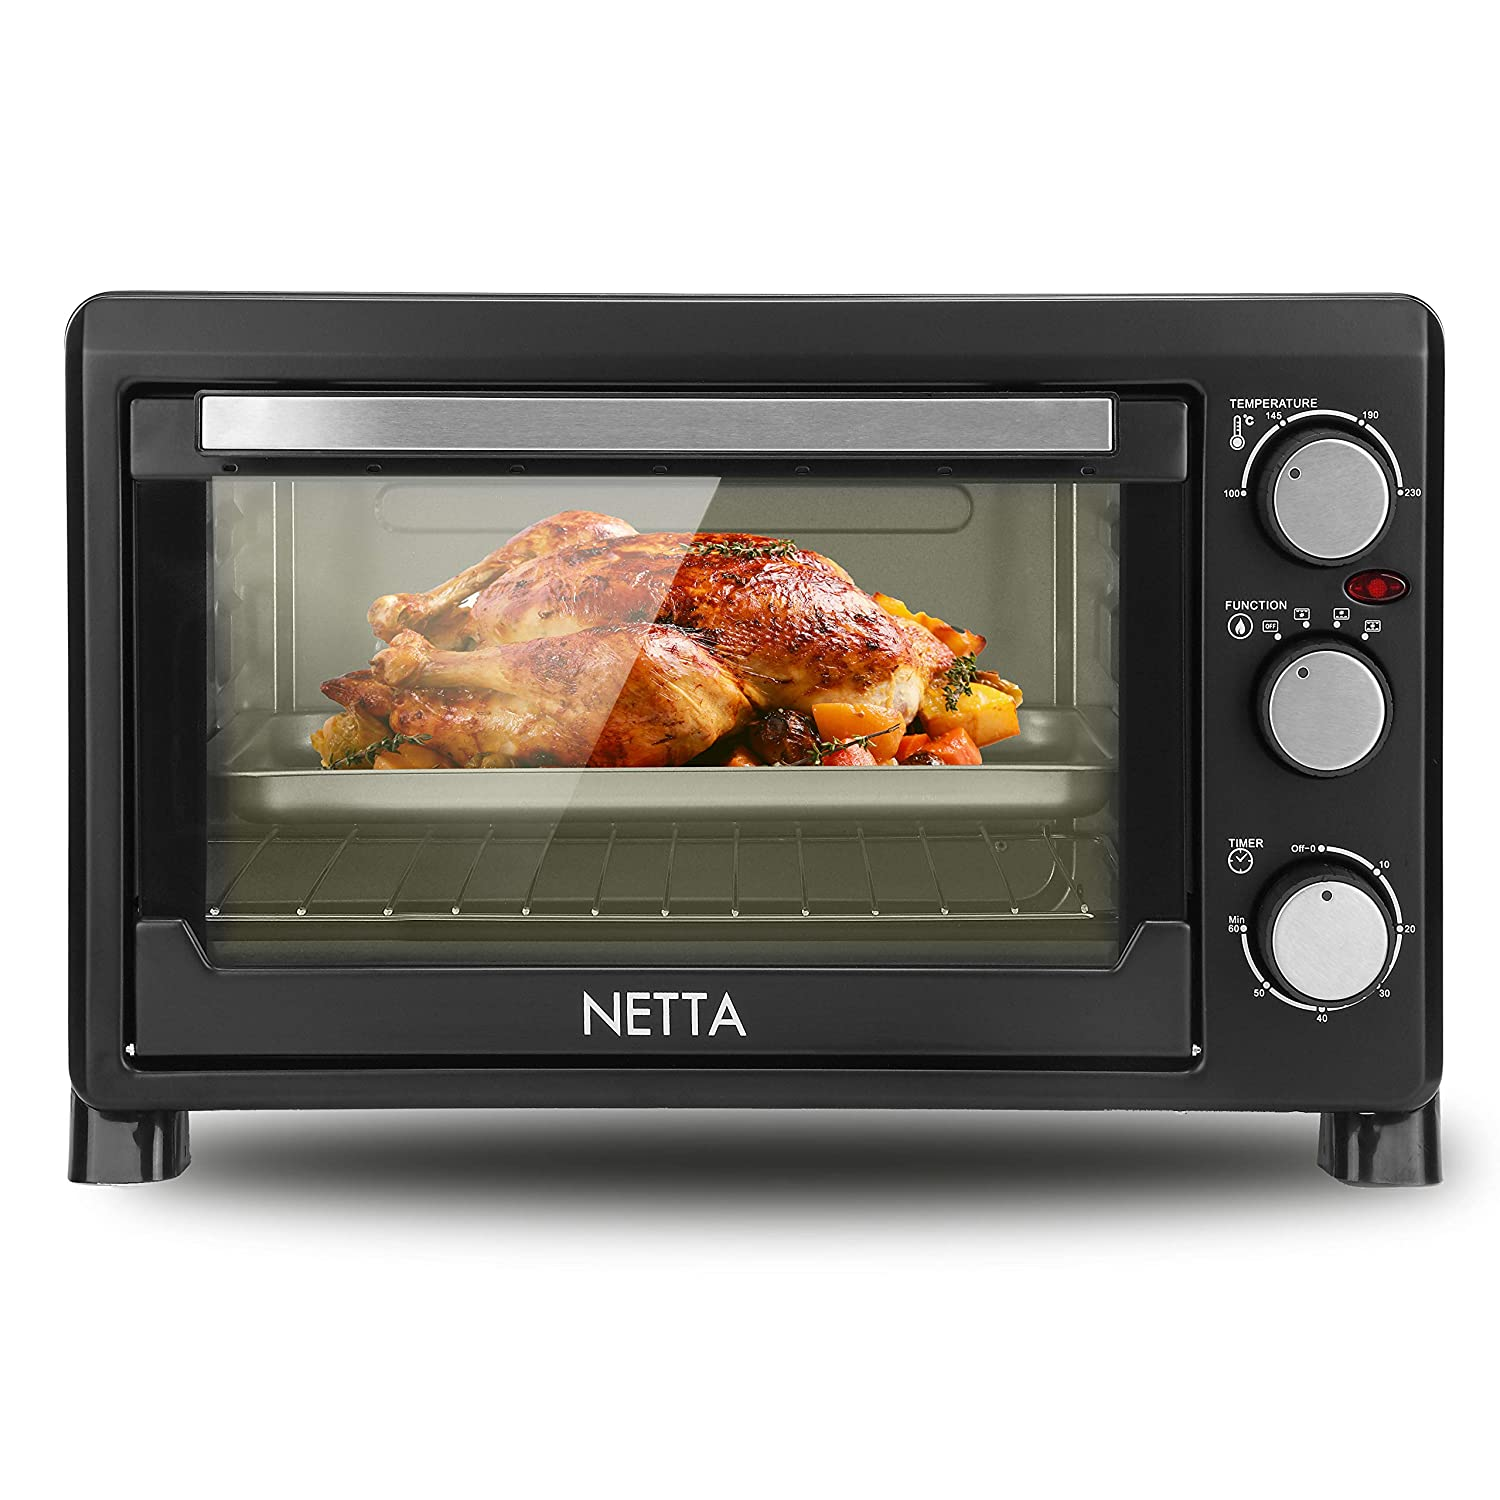 NETTA 18L Electric Mini Oven and Grill, with Multiple Cooking Functions, Adjustable Temperature Control and Timer - Accessories Included - Black 1200W